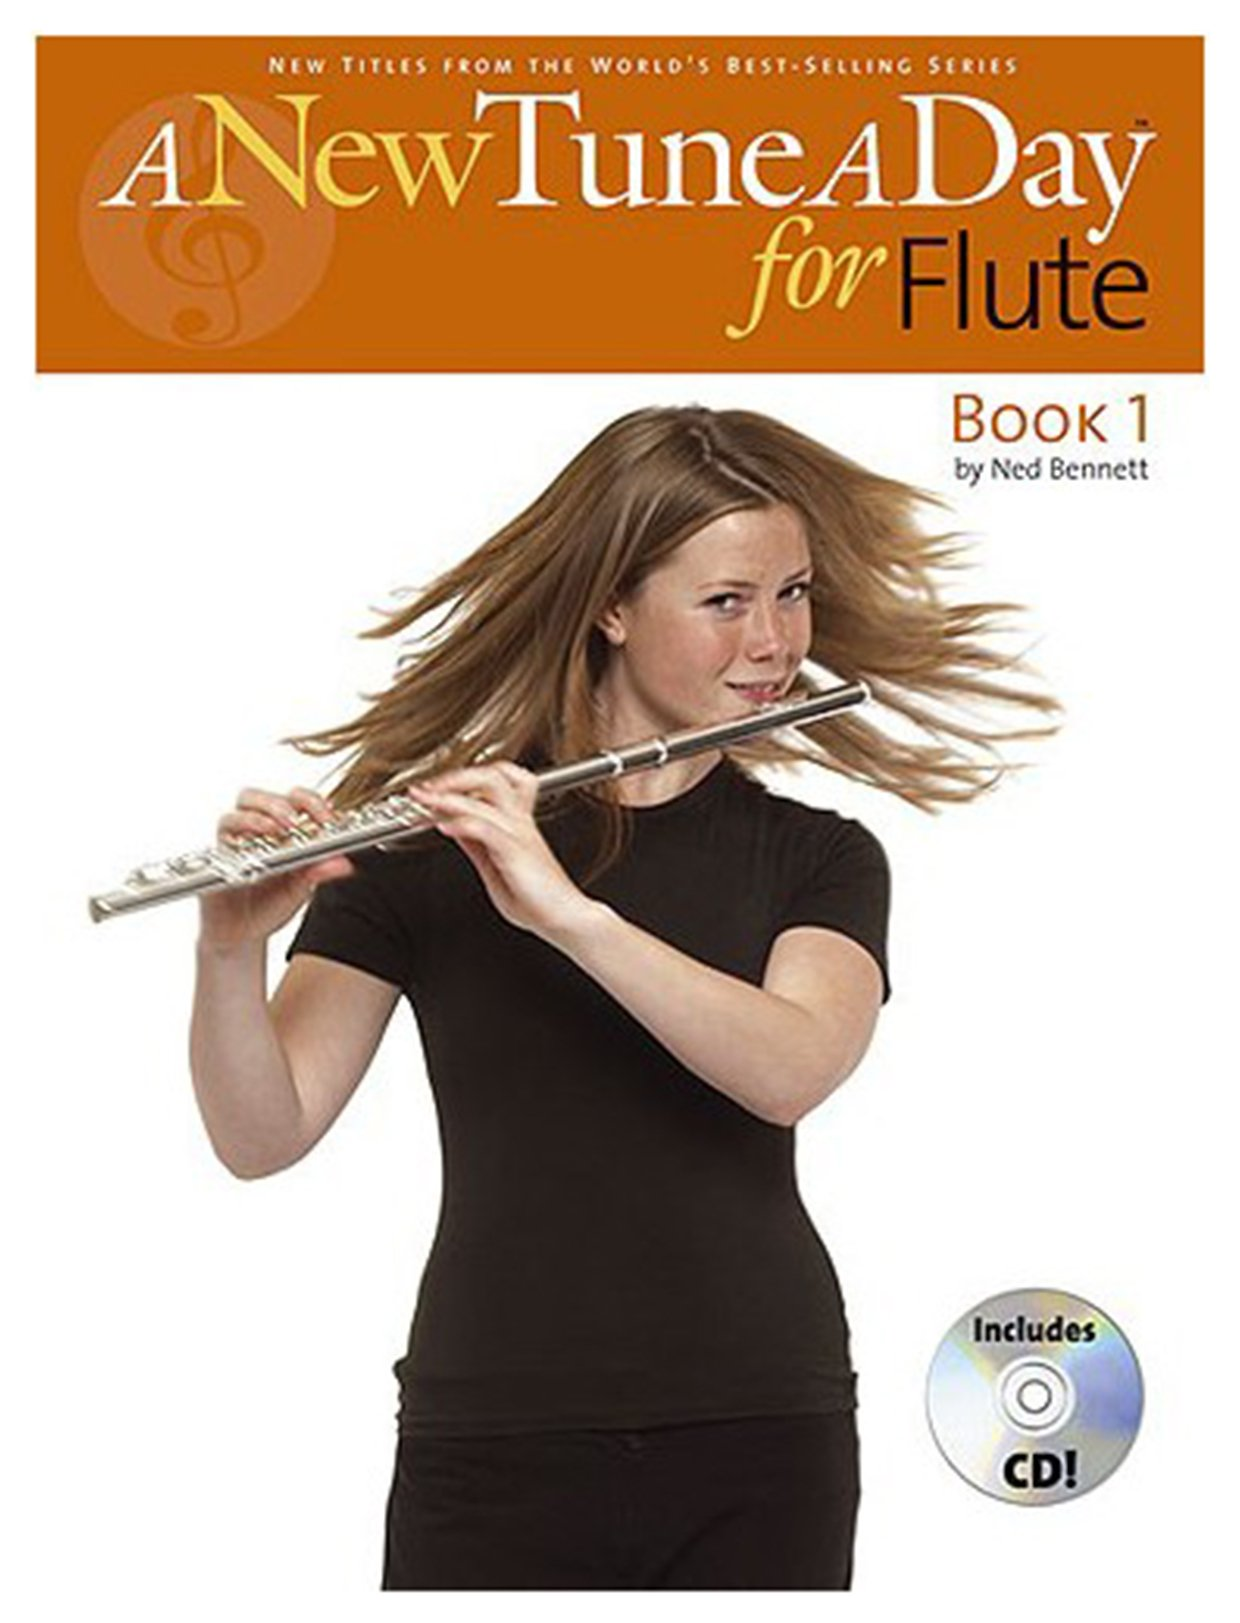 Image of Boston Music - A New Tune a Day for Flute - Book One